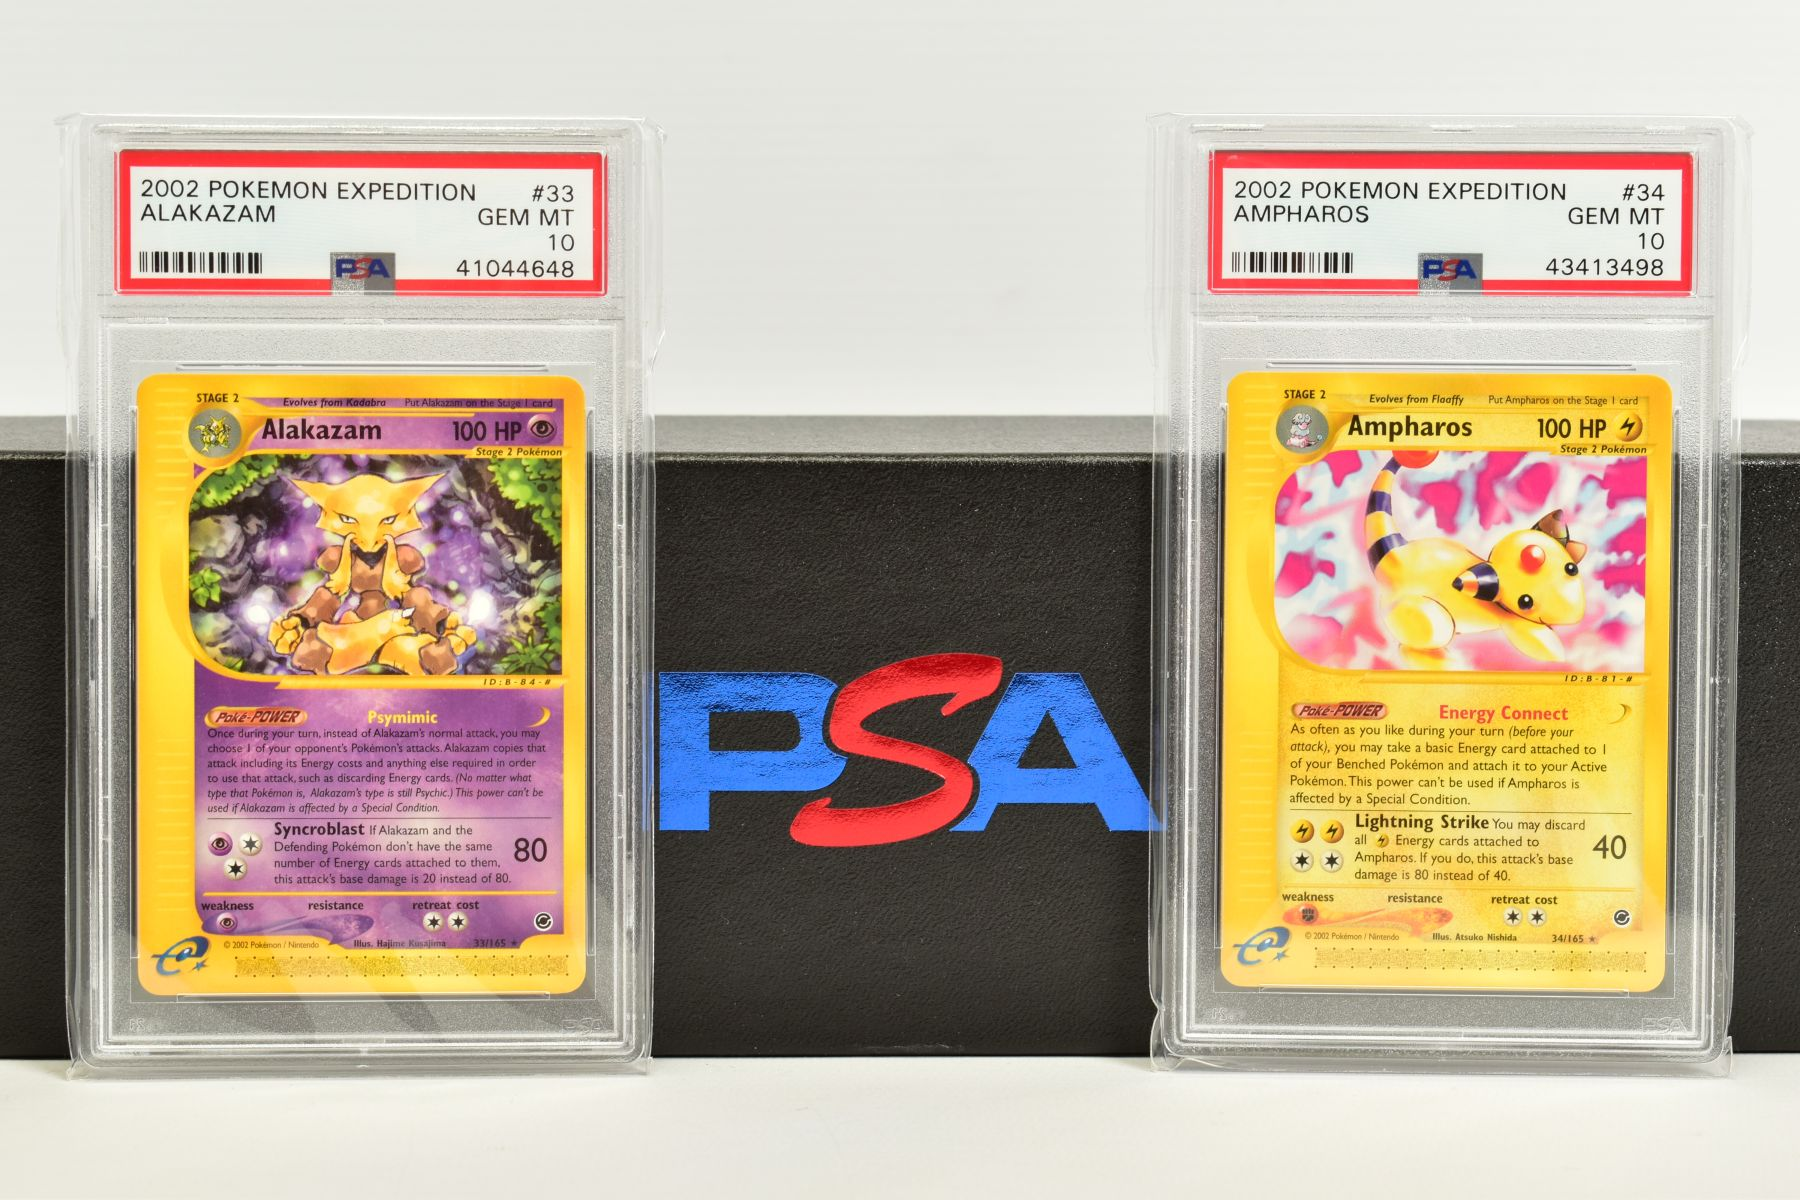 A QUANTITY OF PSA GRADED POKEMON E CARD EXPEDITION BASE SET CARDS, all are graded GEM MINT 10 and